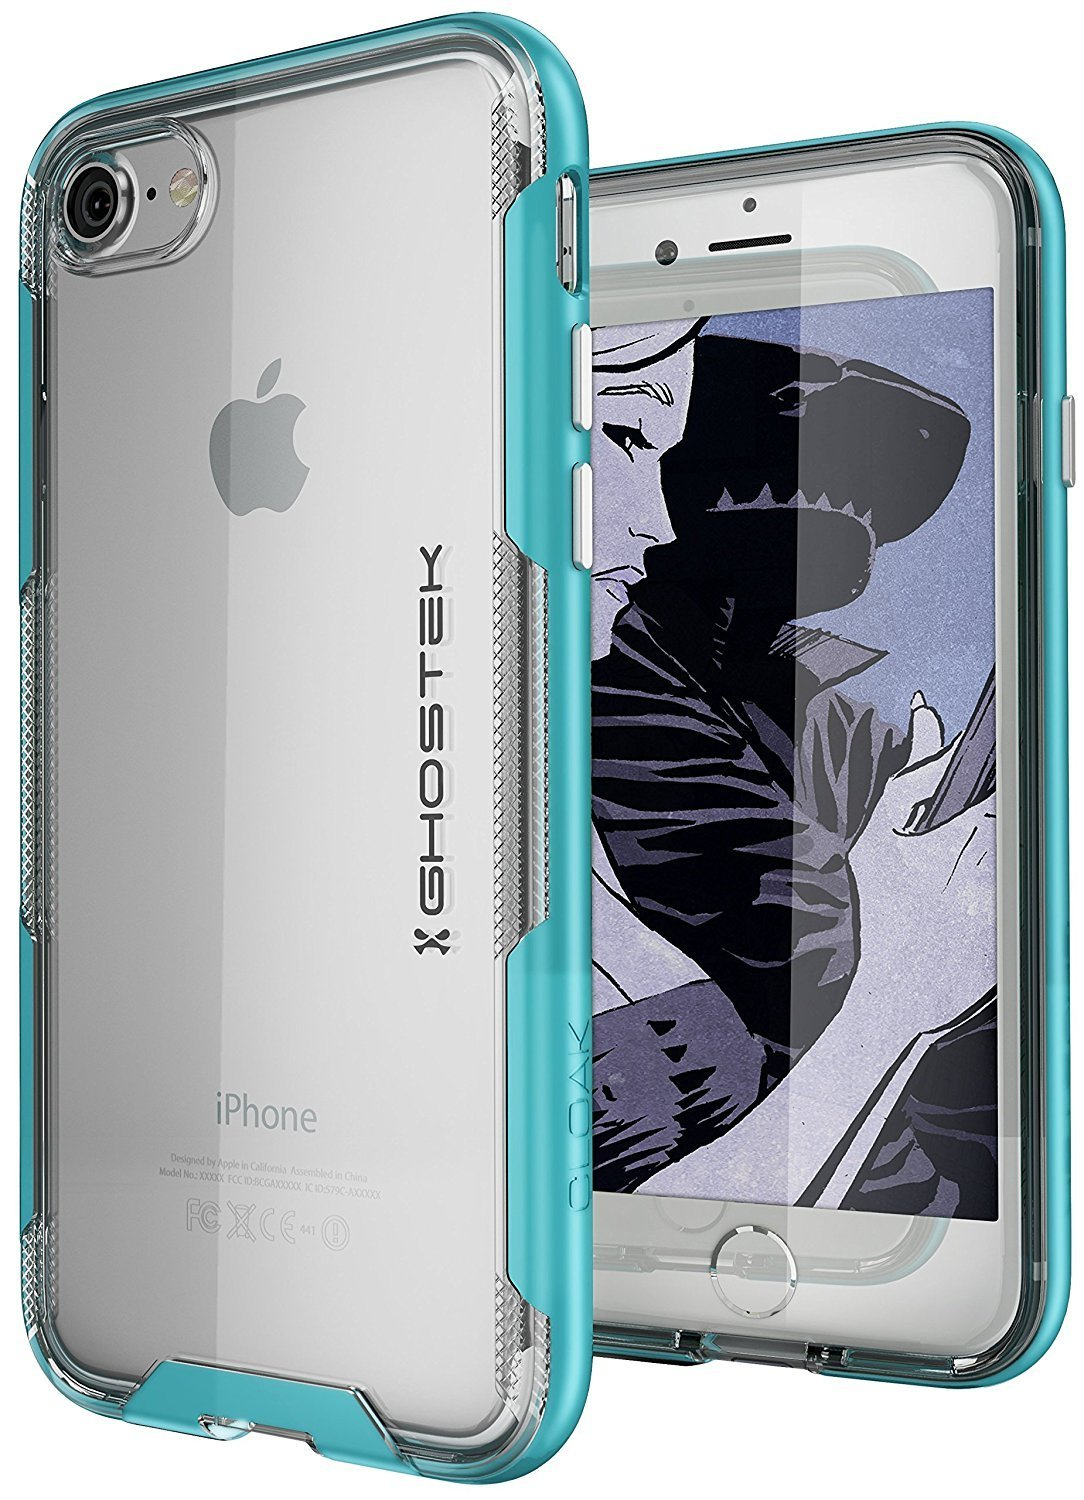 iPhone 8 Case, Ghostek Cloak 3 Series Case for iPhone 8 Case Clear Protective Case [TEAL]